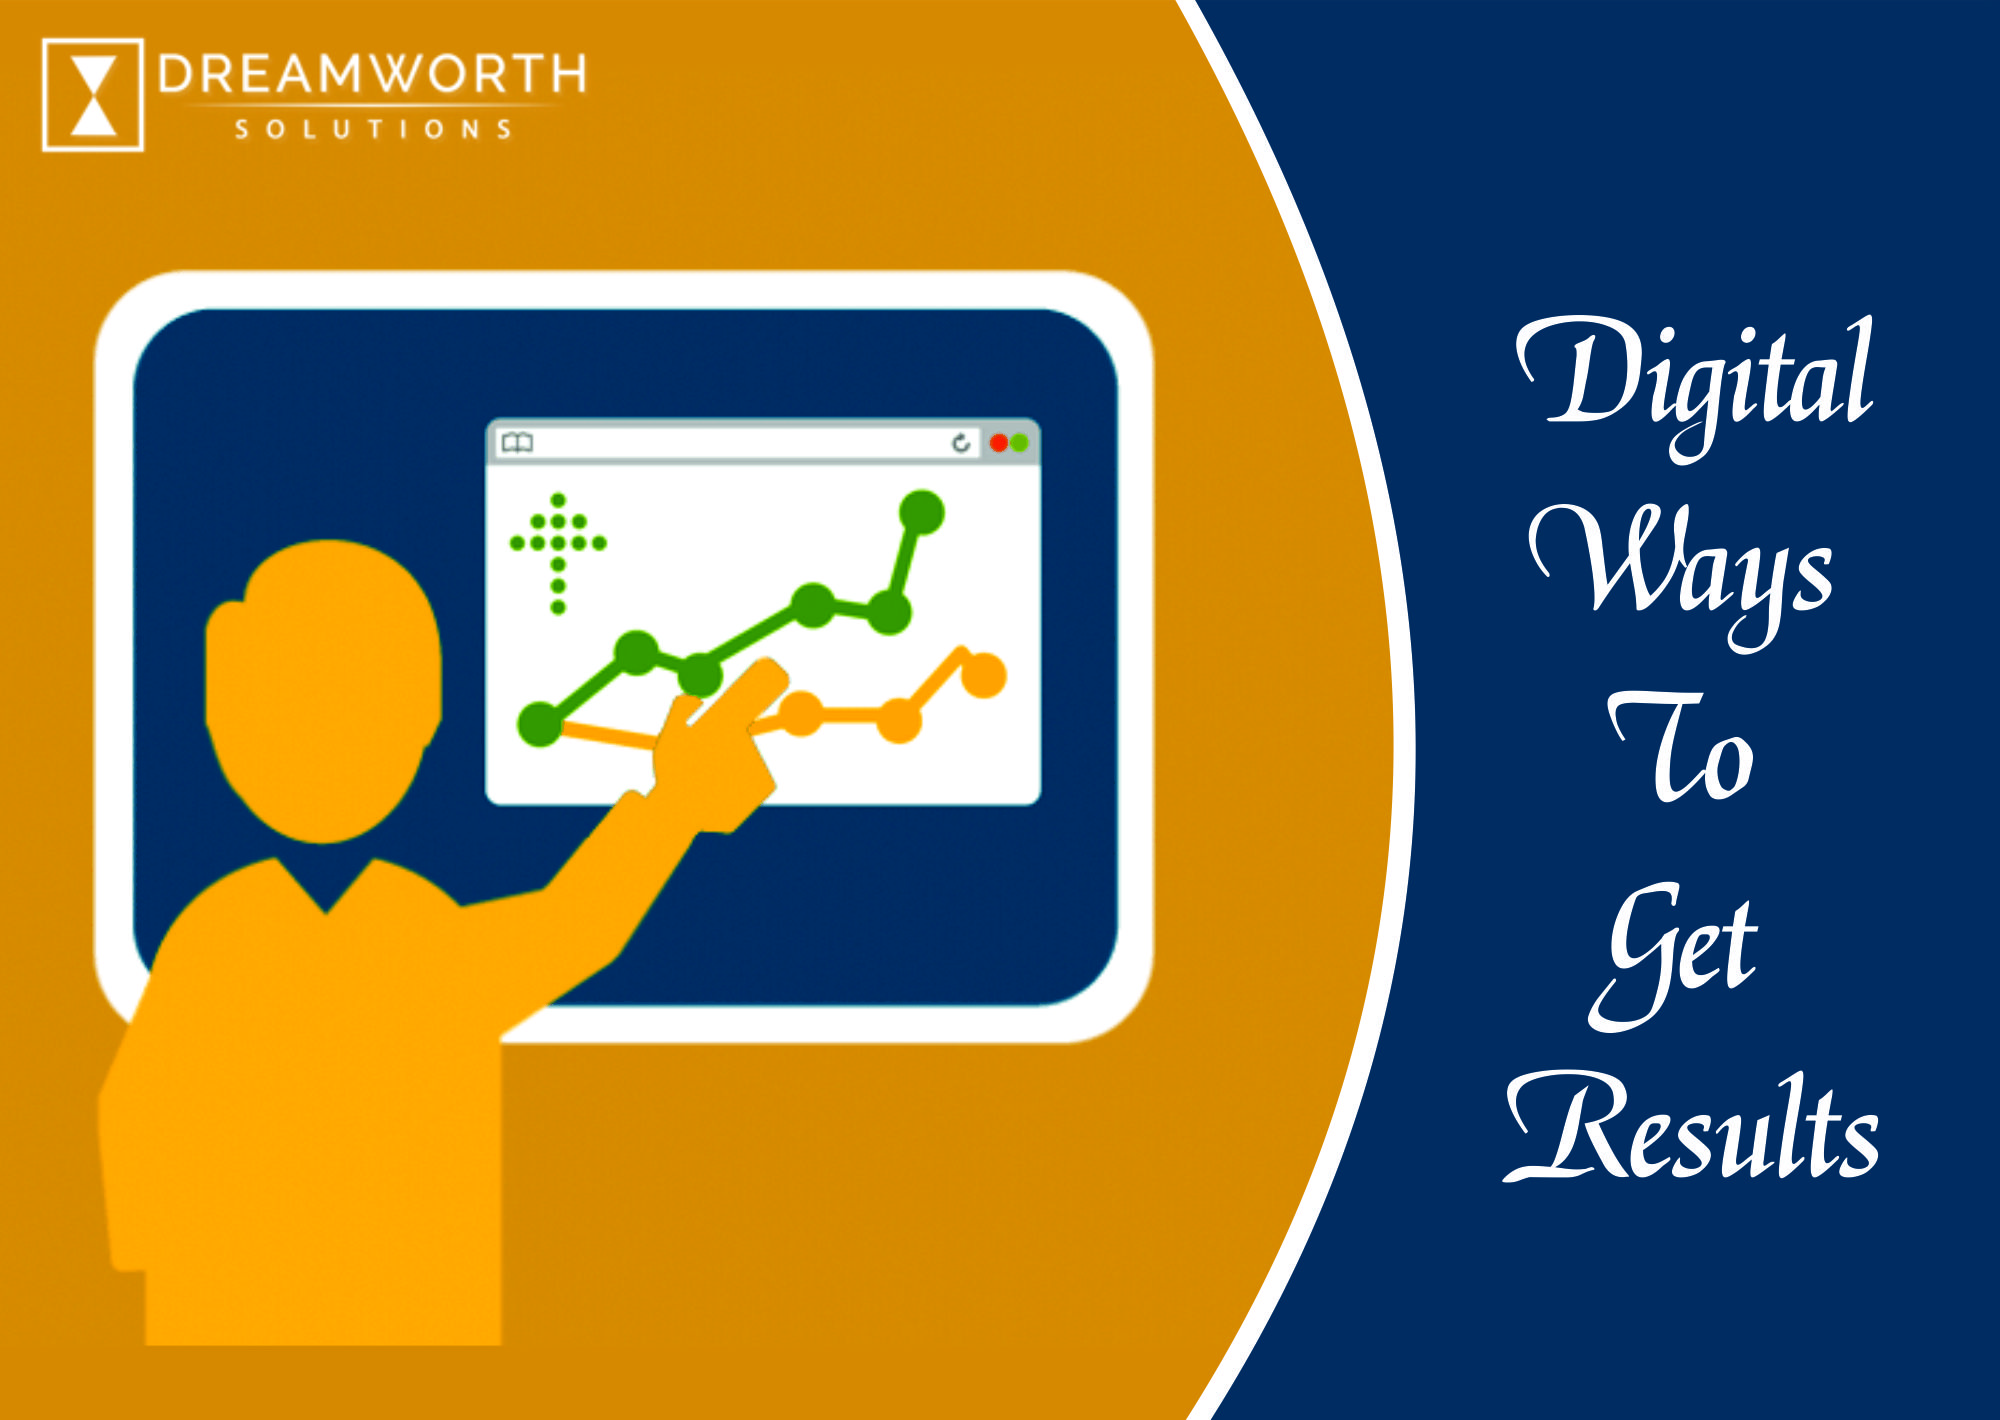 Dreamworth provides digital marketing service for maximize the traffic on your website